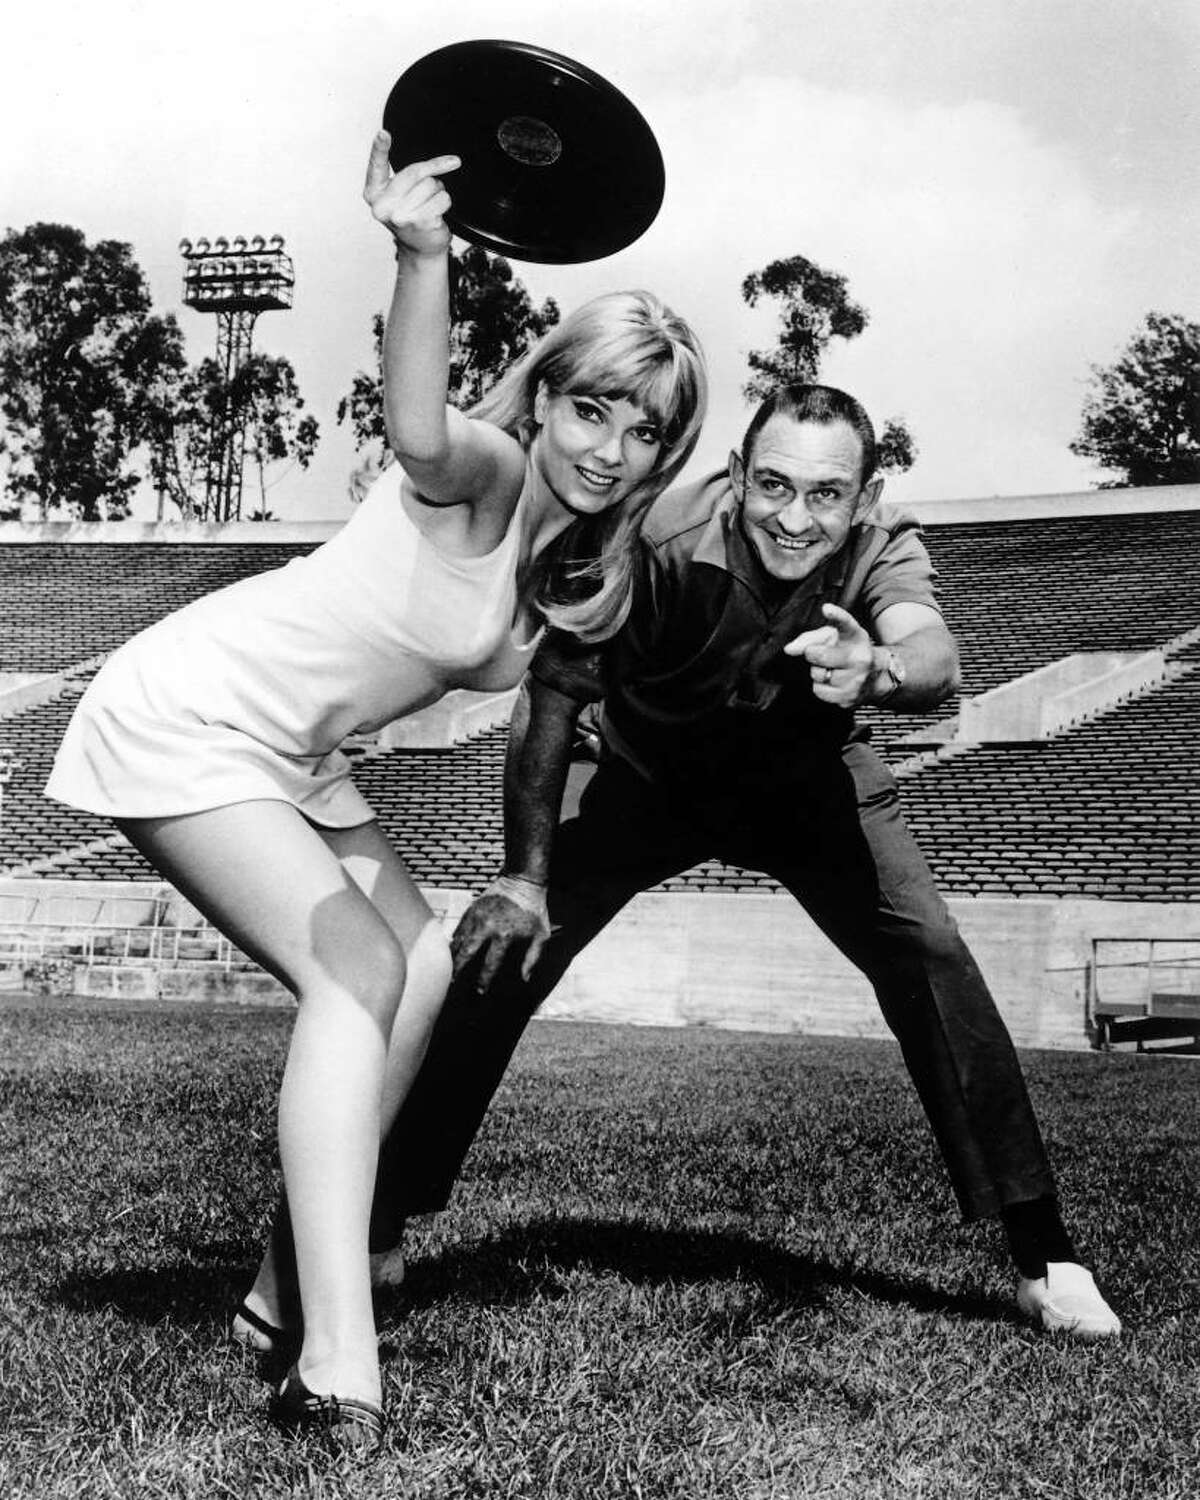 Contributed photo Frisbee inventor Fred Morrison, with a model, in a Wham-O 1967 publicity photo.